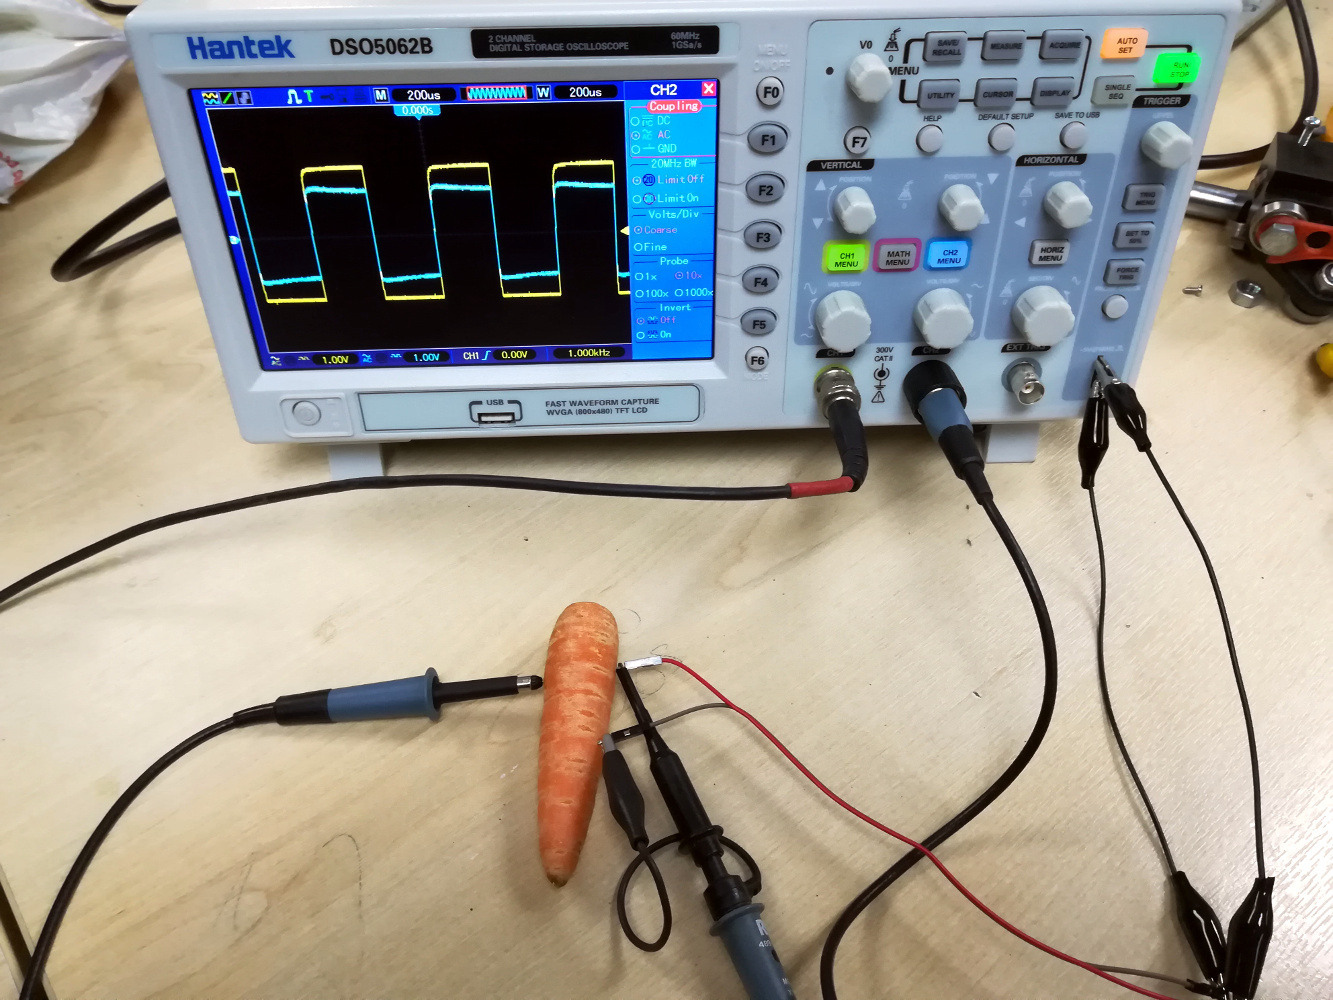 The high point of an engineer's life comes as they measure the electrical properties of a root vegetable.